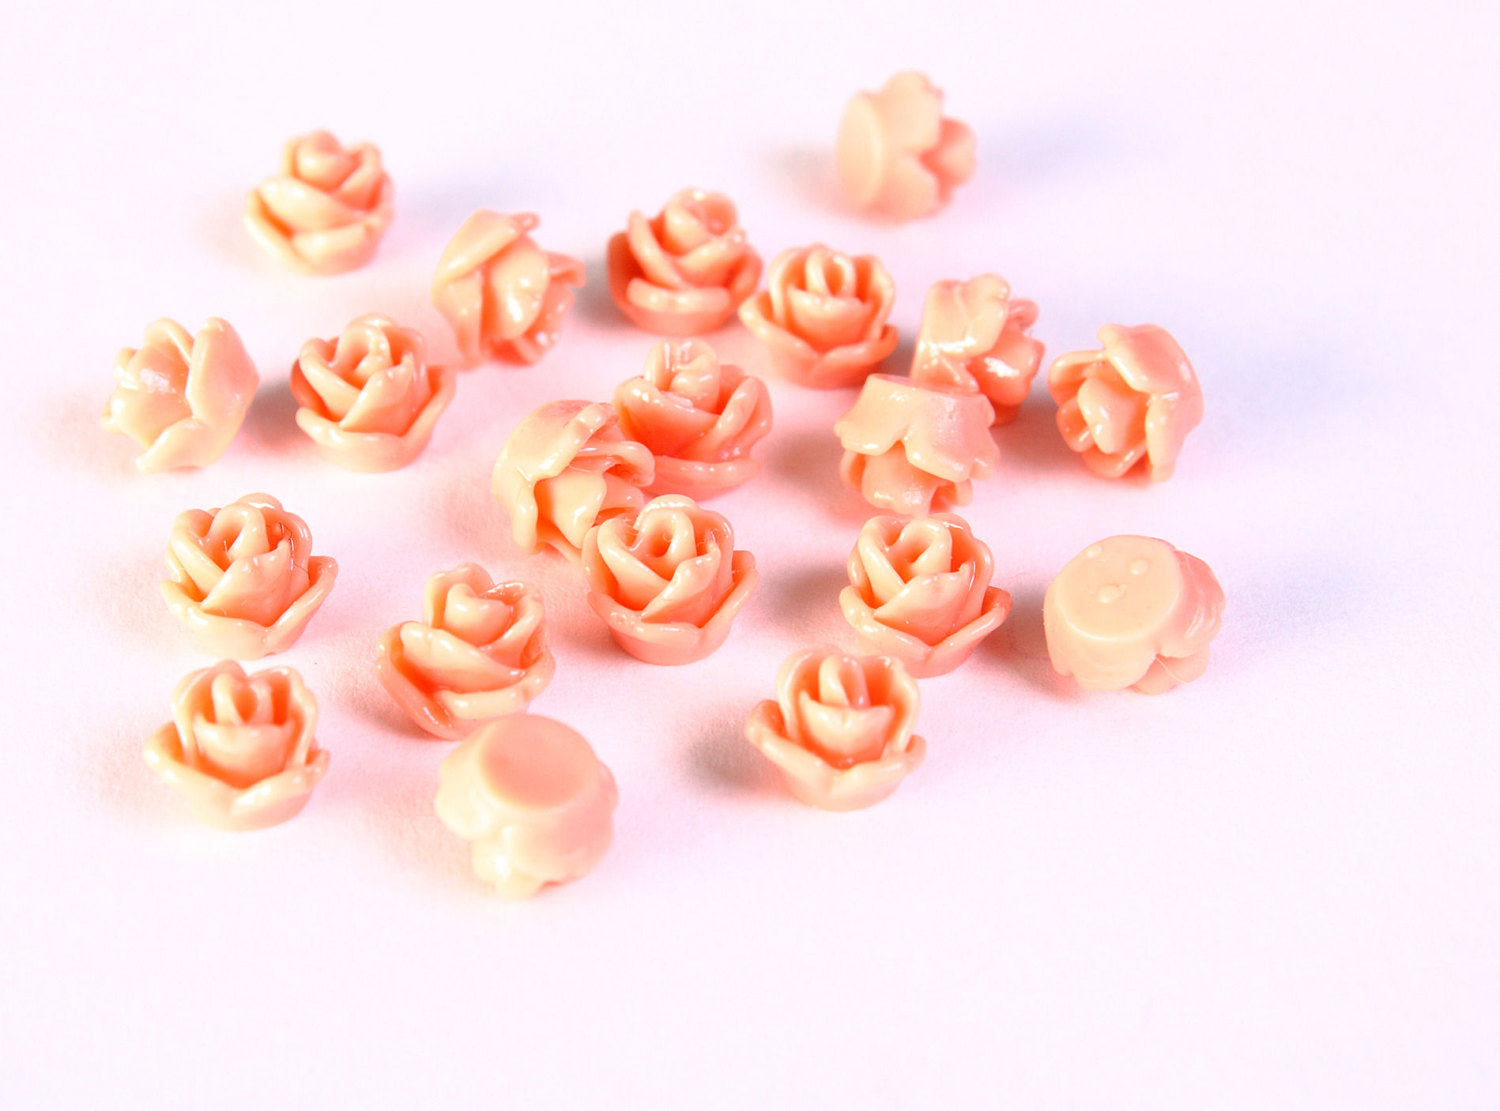 7.5mm salmon flower cabochons - resin tiny small rosebud cabochons - rose flower cabochon - 10 pieces (1412)